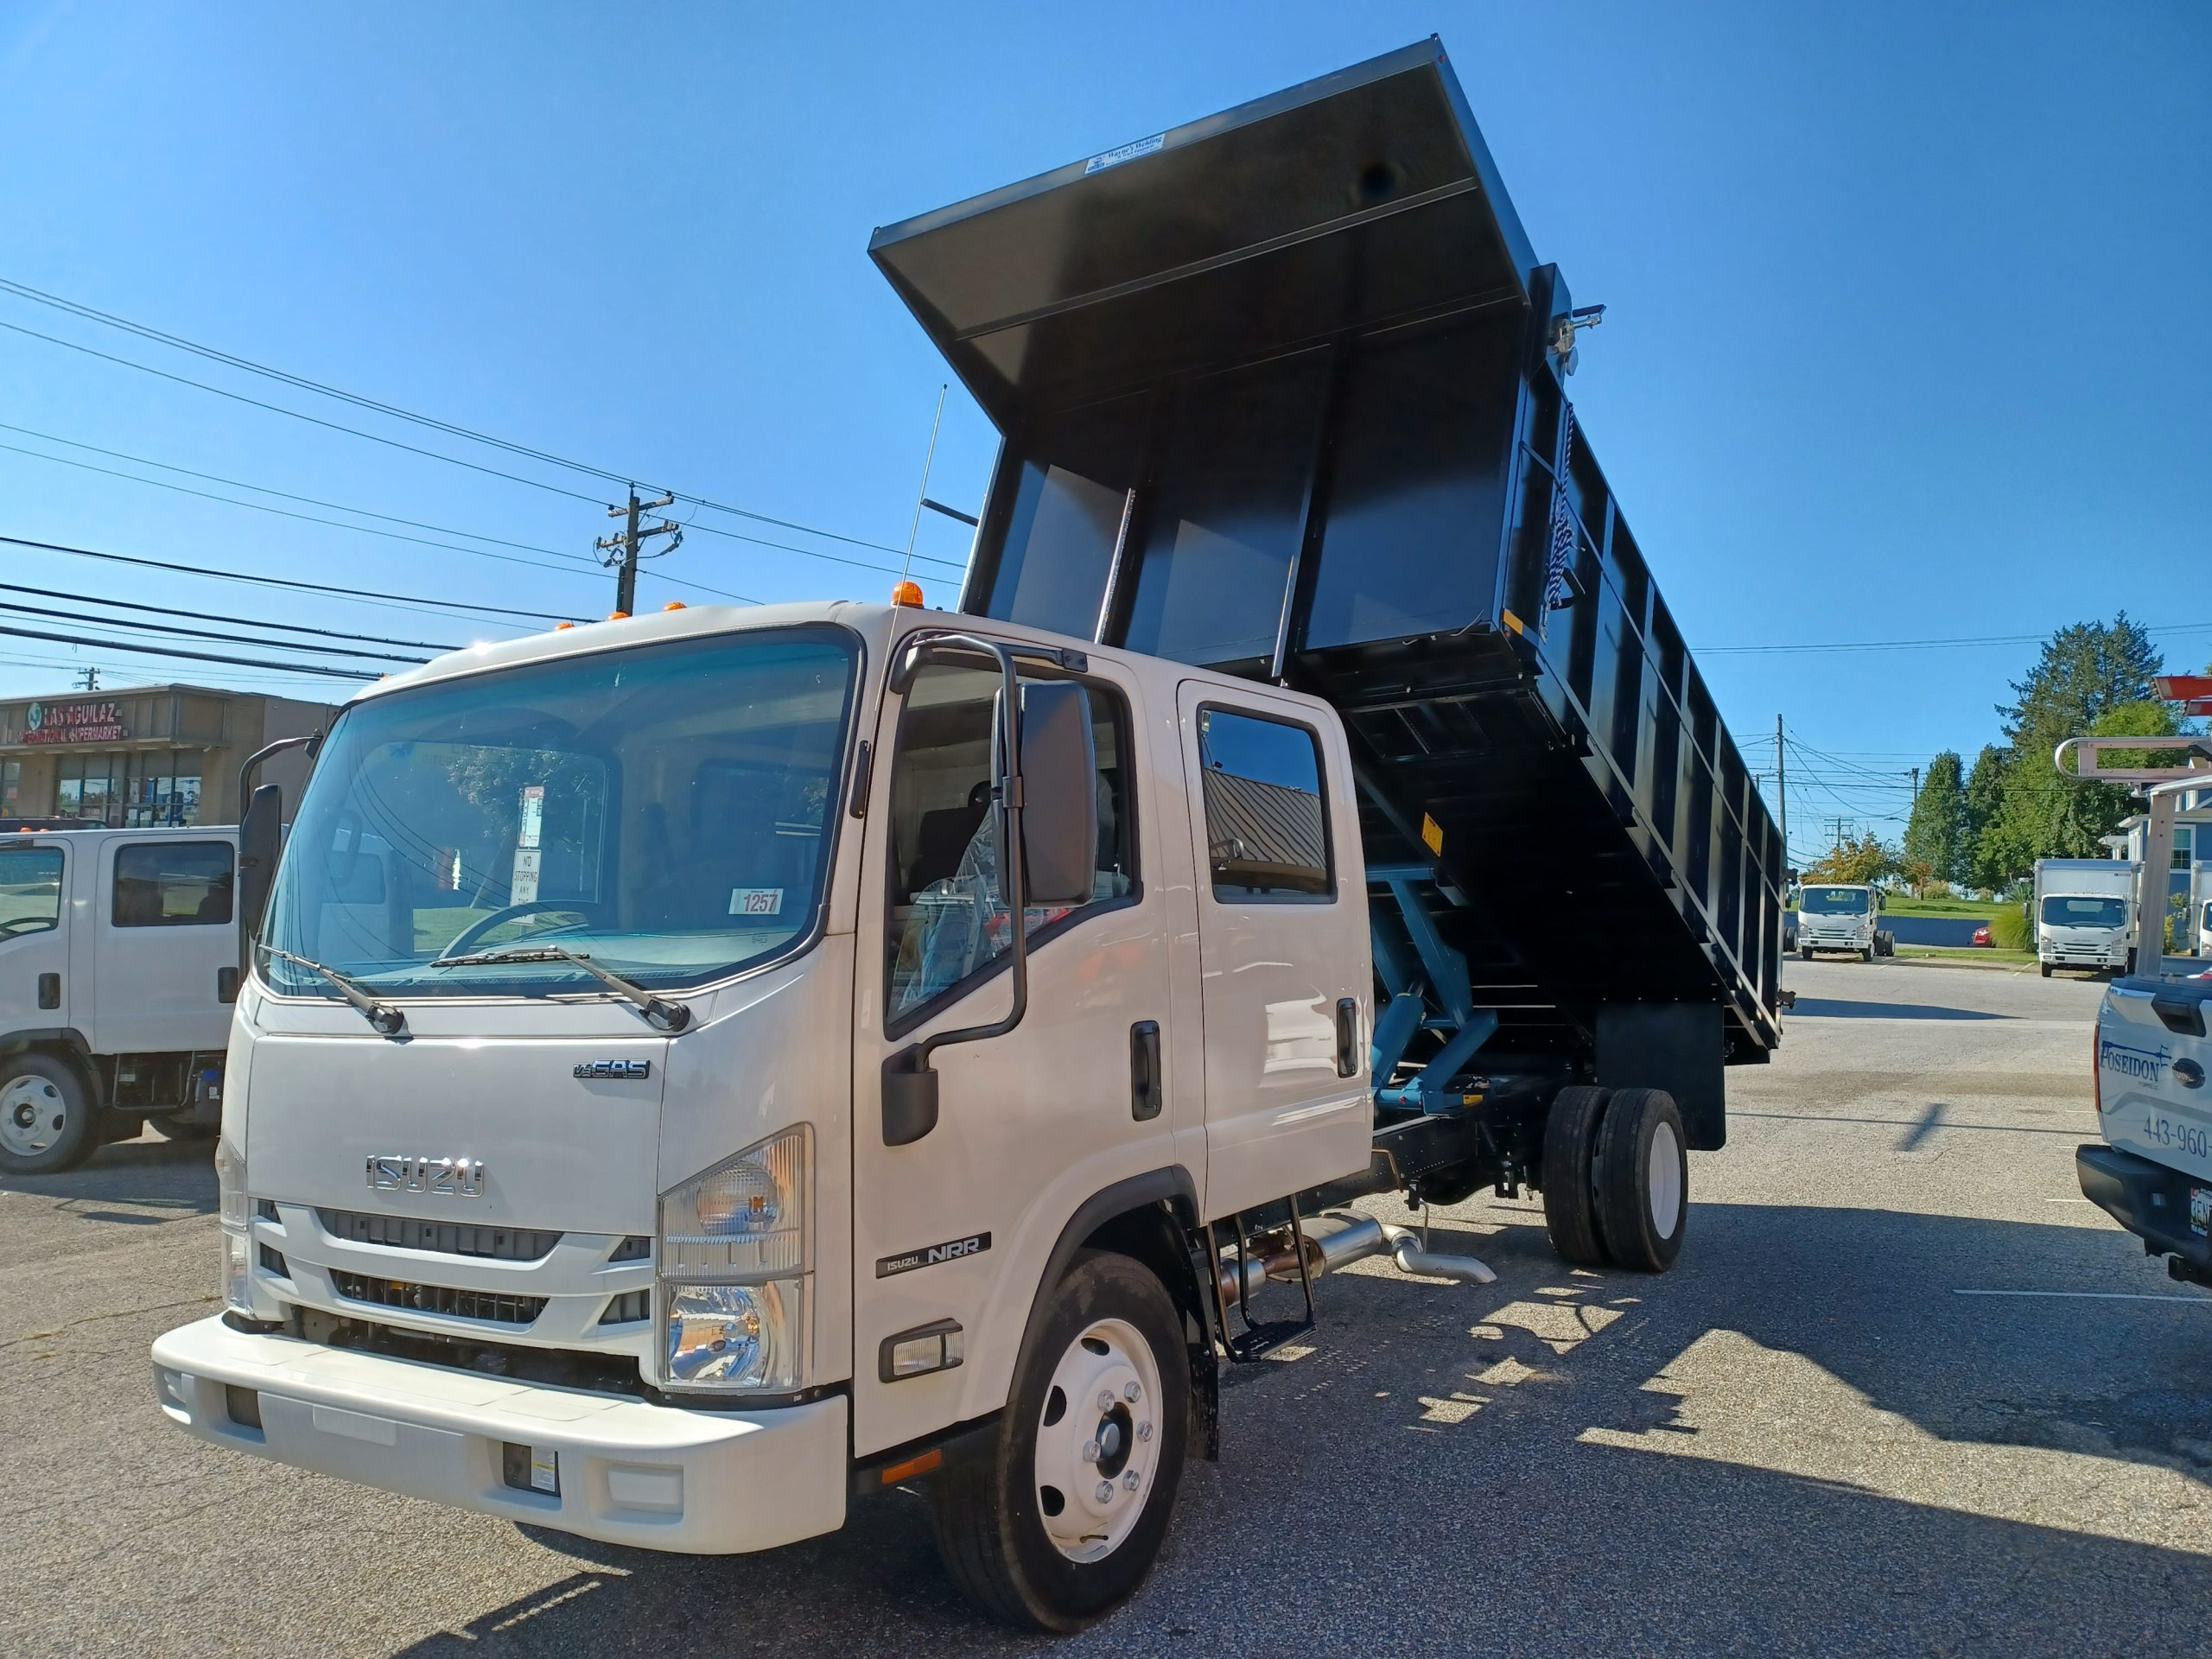 2021 NRR Dump Body 19500gvwr Gas Motor Payload of 8500lbs Crew Cab 7 passenger seating 20210903_092801-scaled